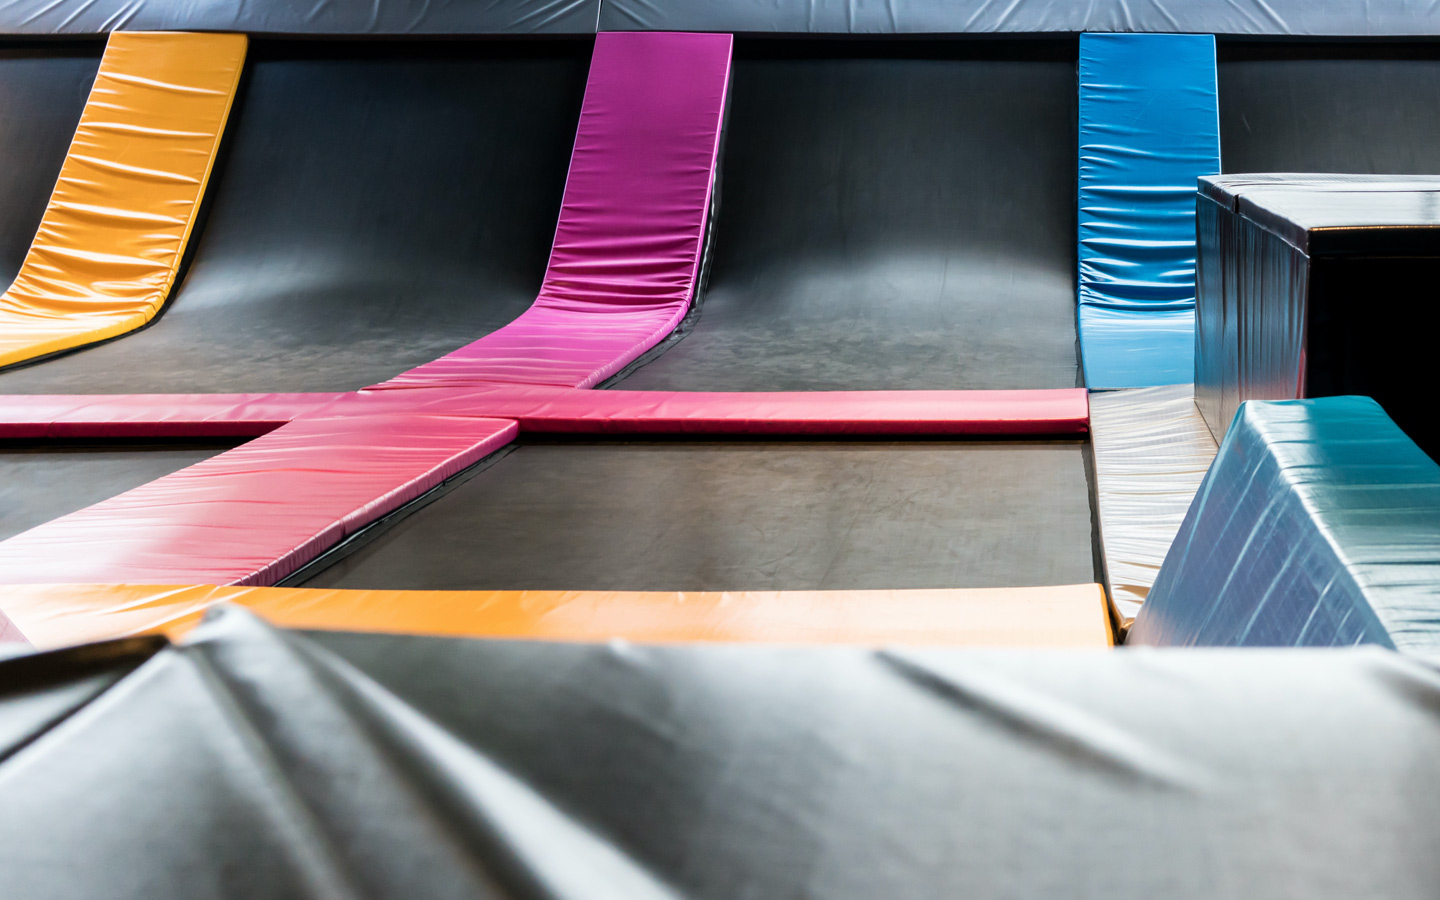 Bounce offers exciting indoor activities in Dubai in a trampoline covered space